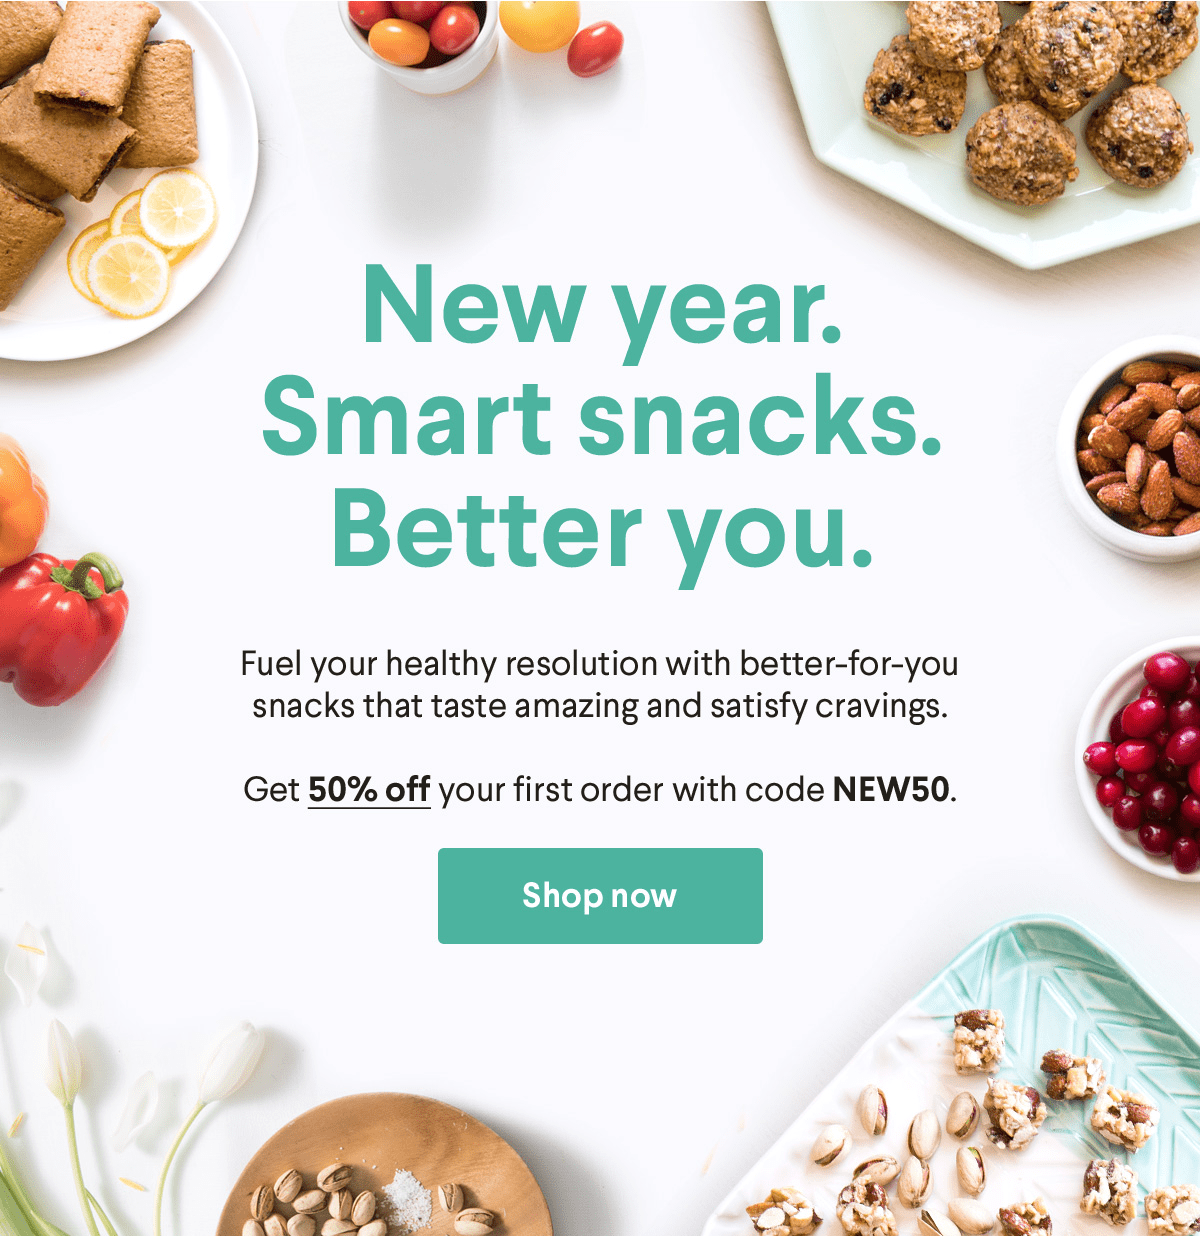 Naturebox Coupon: Save 50% on First Order! LAST DAY!